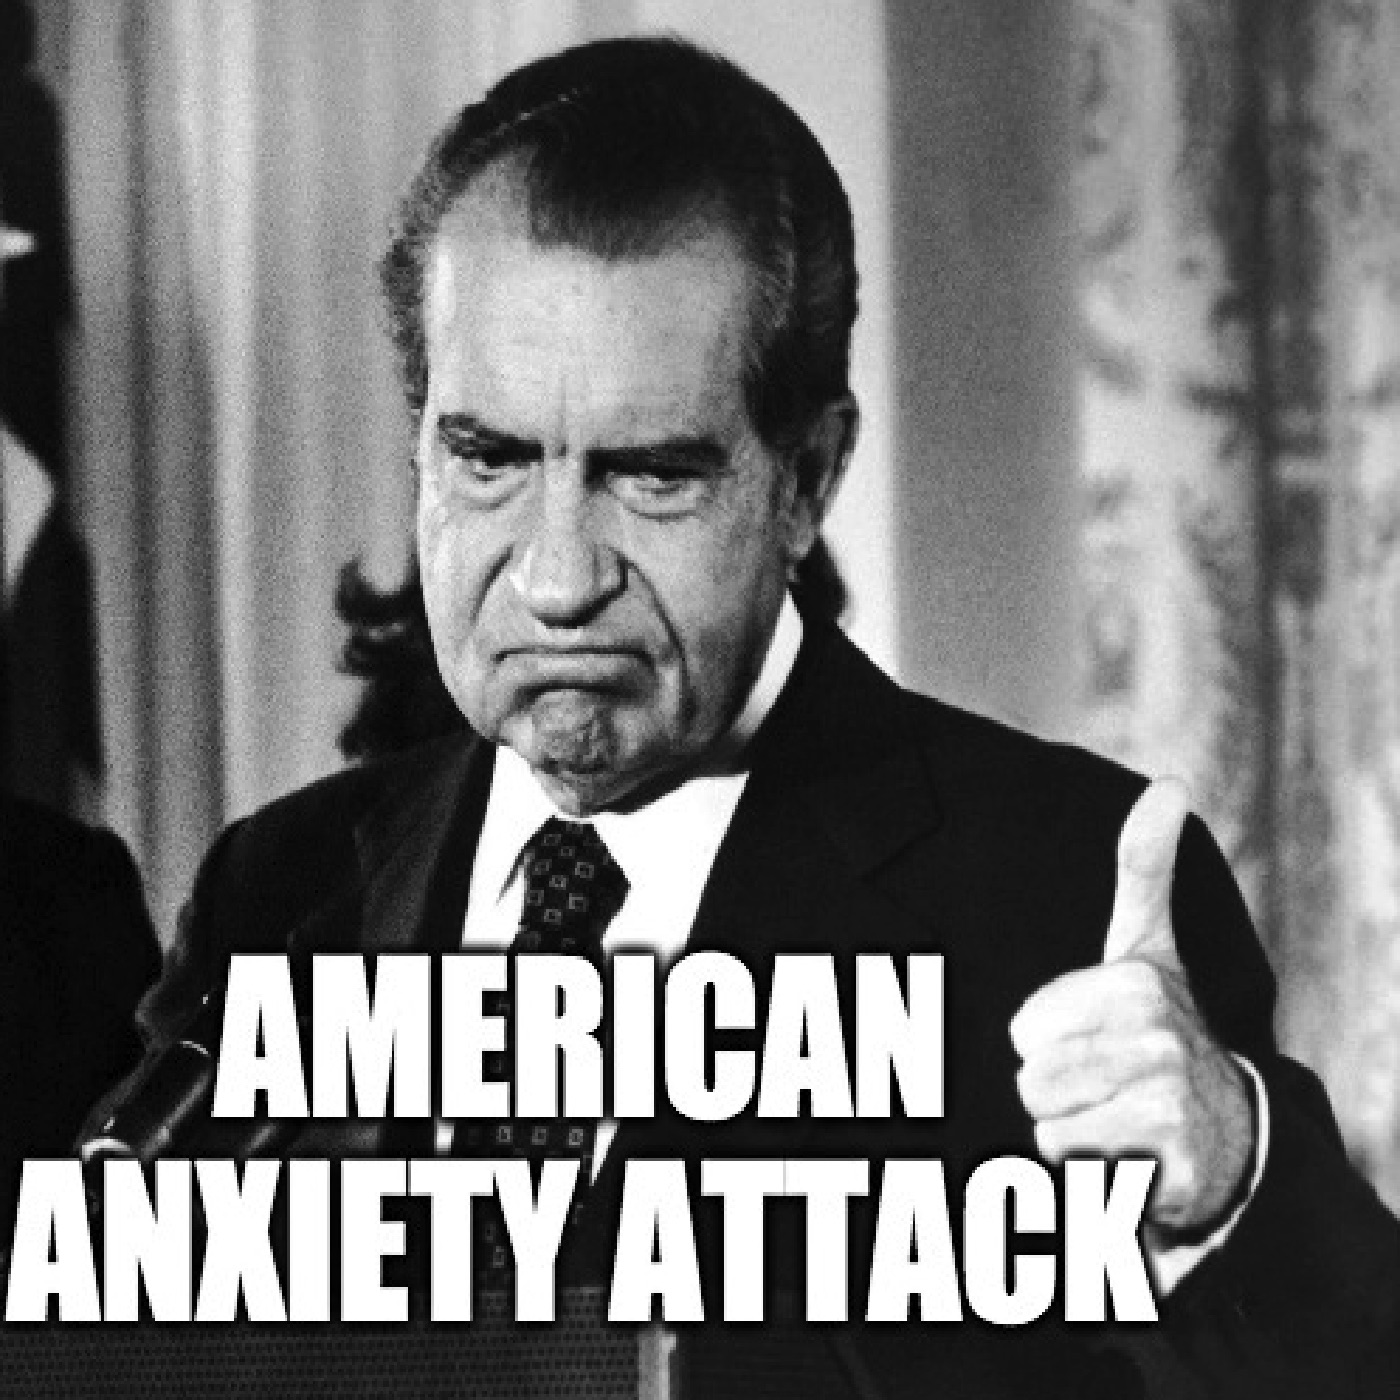 Show artwork for American Anxiety Attack